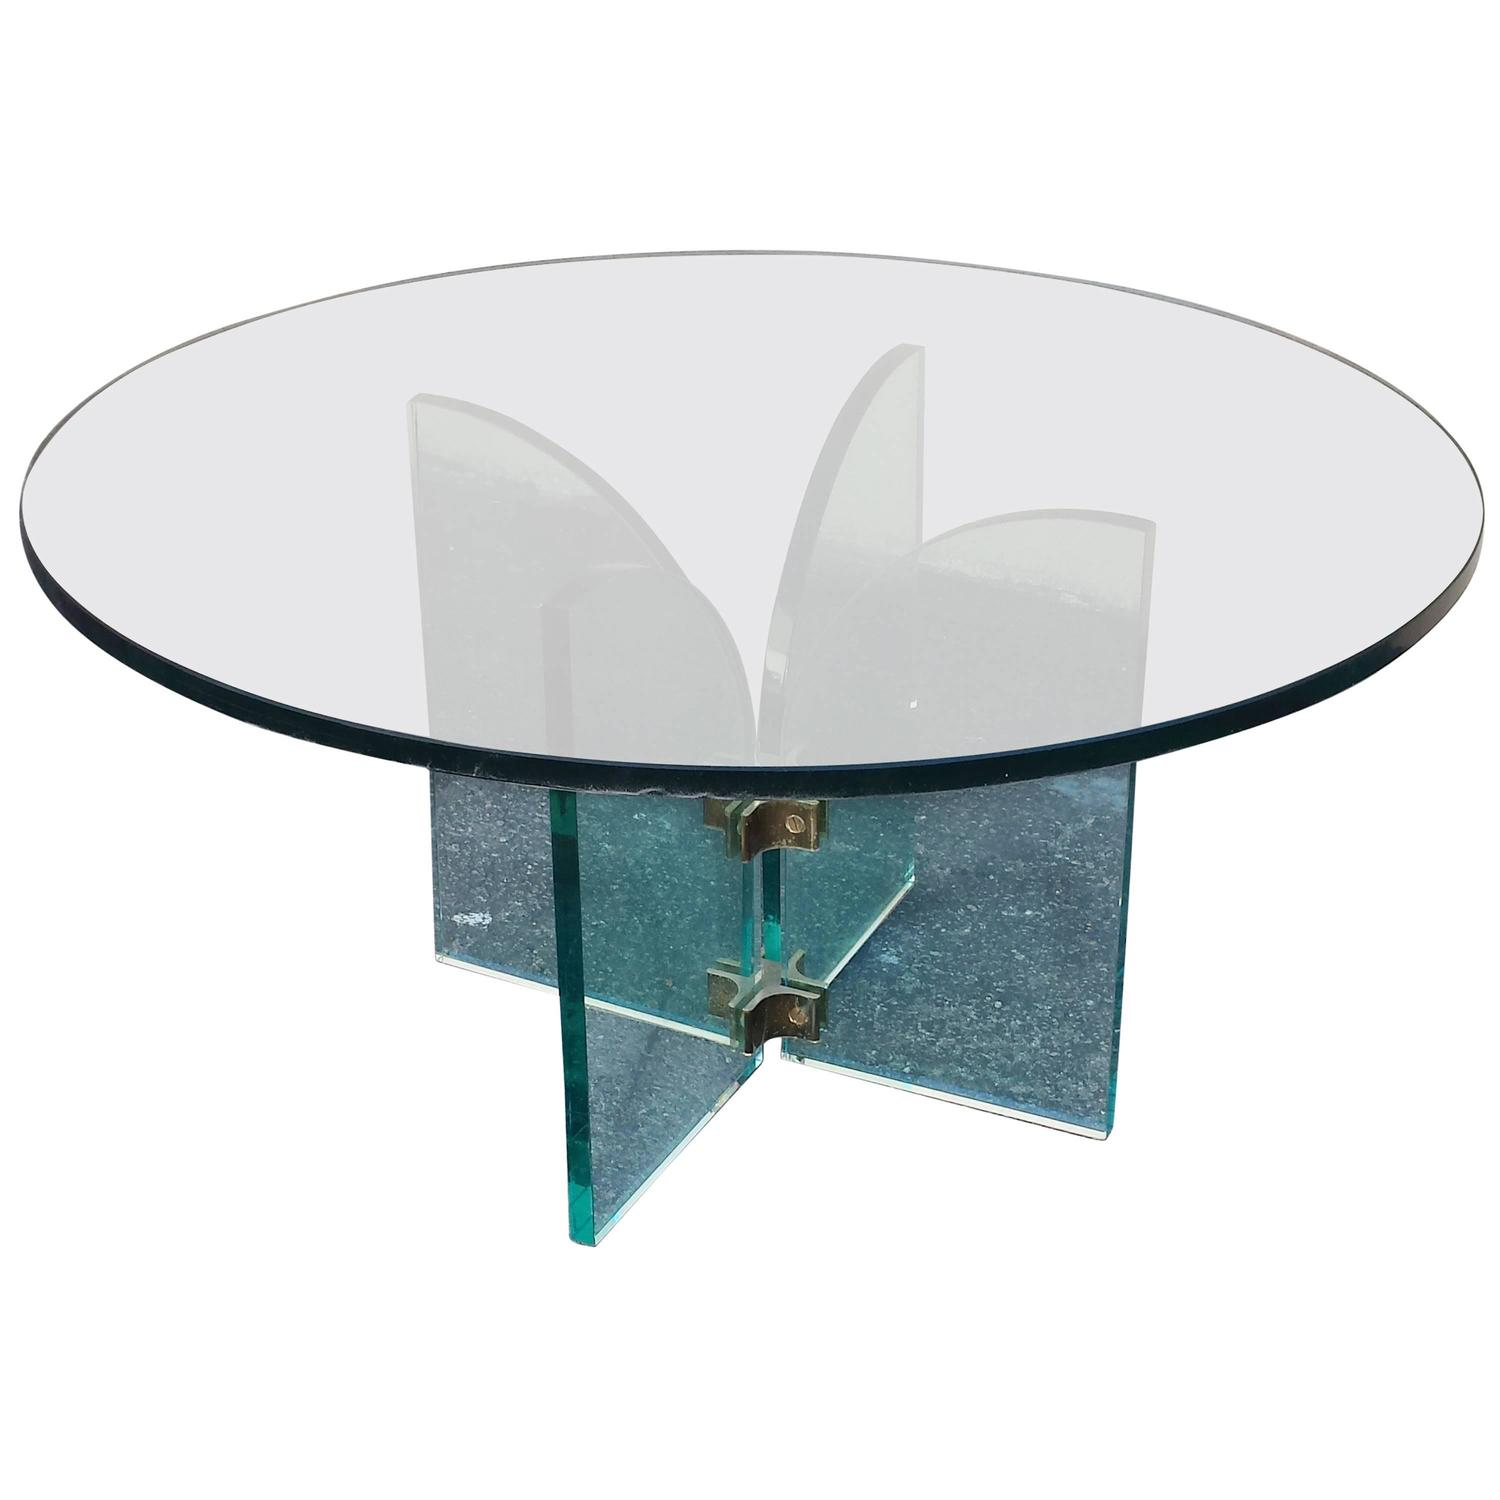 Coffee Table Mid Century Modern Style Round Glass Coffee Or Cocktail Table For Sale At 1stdibs